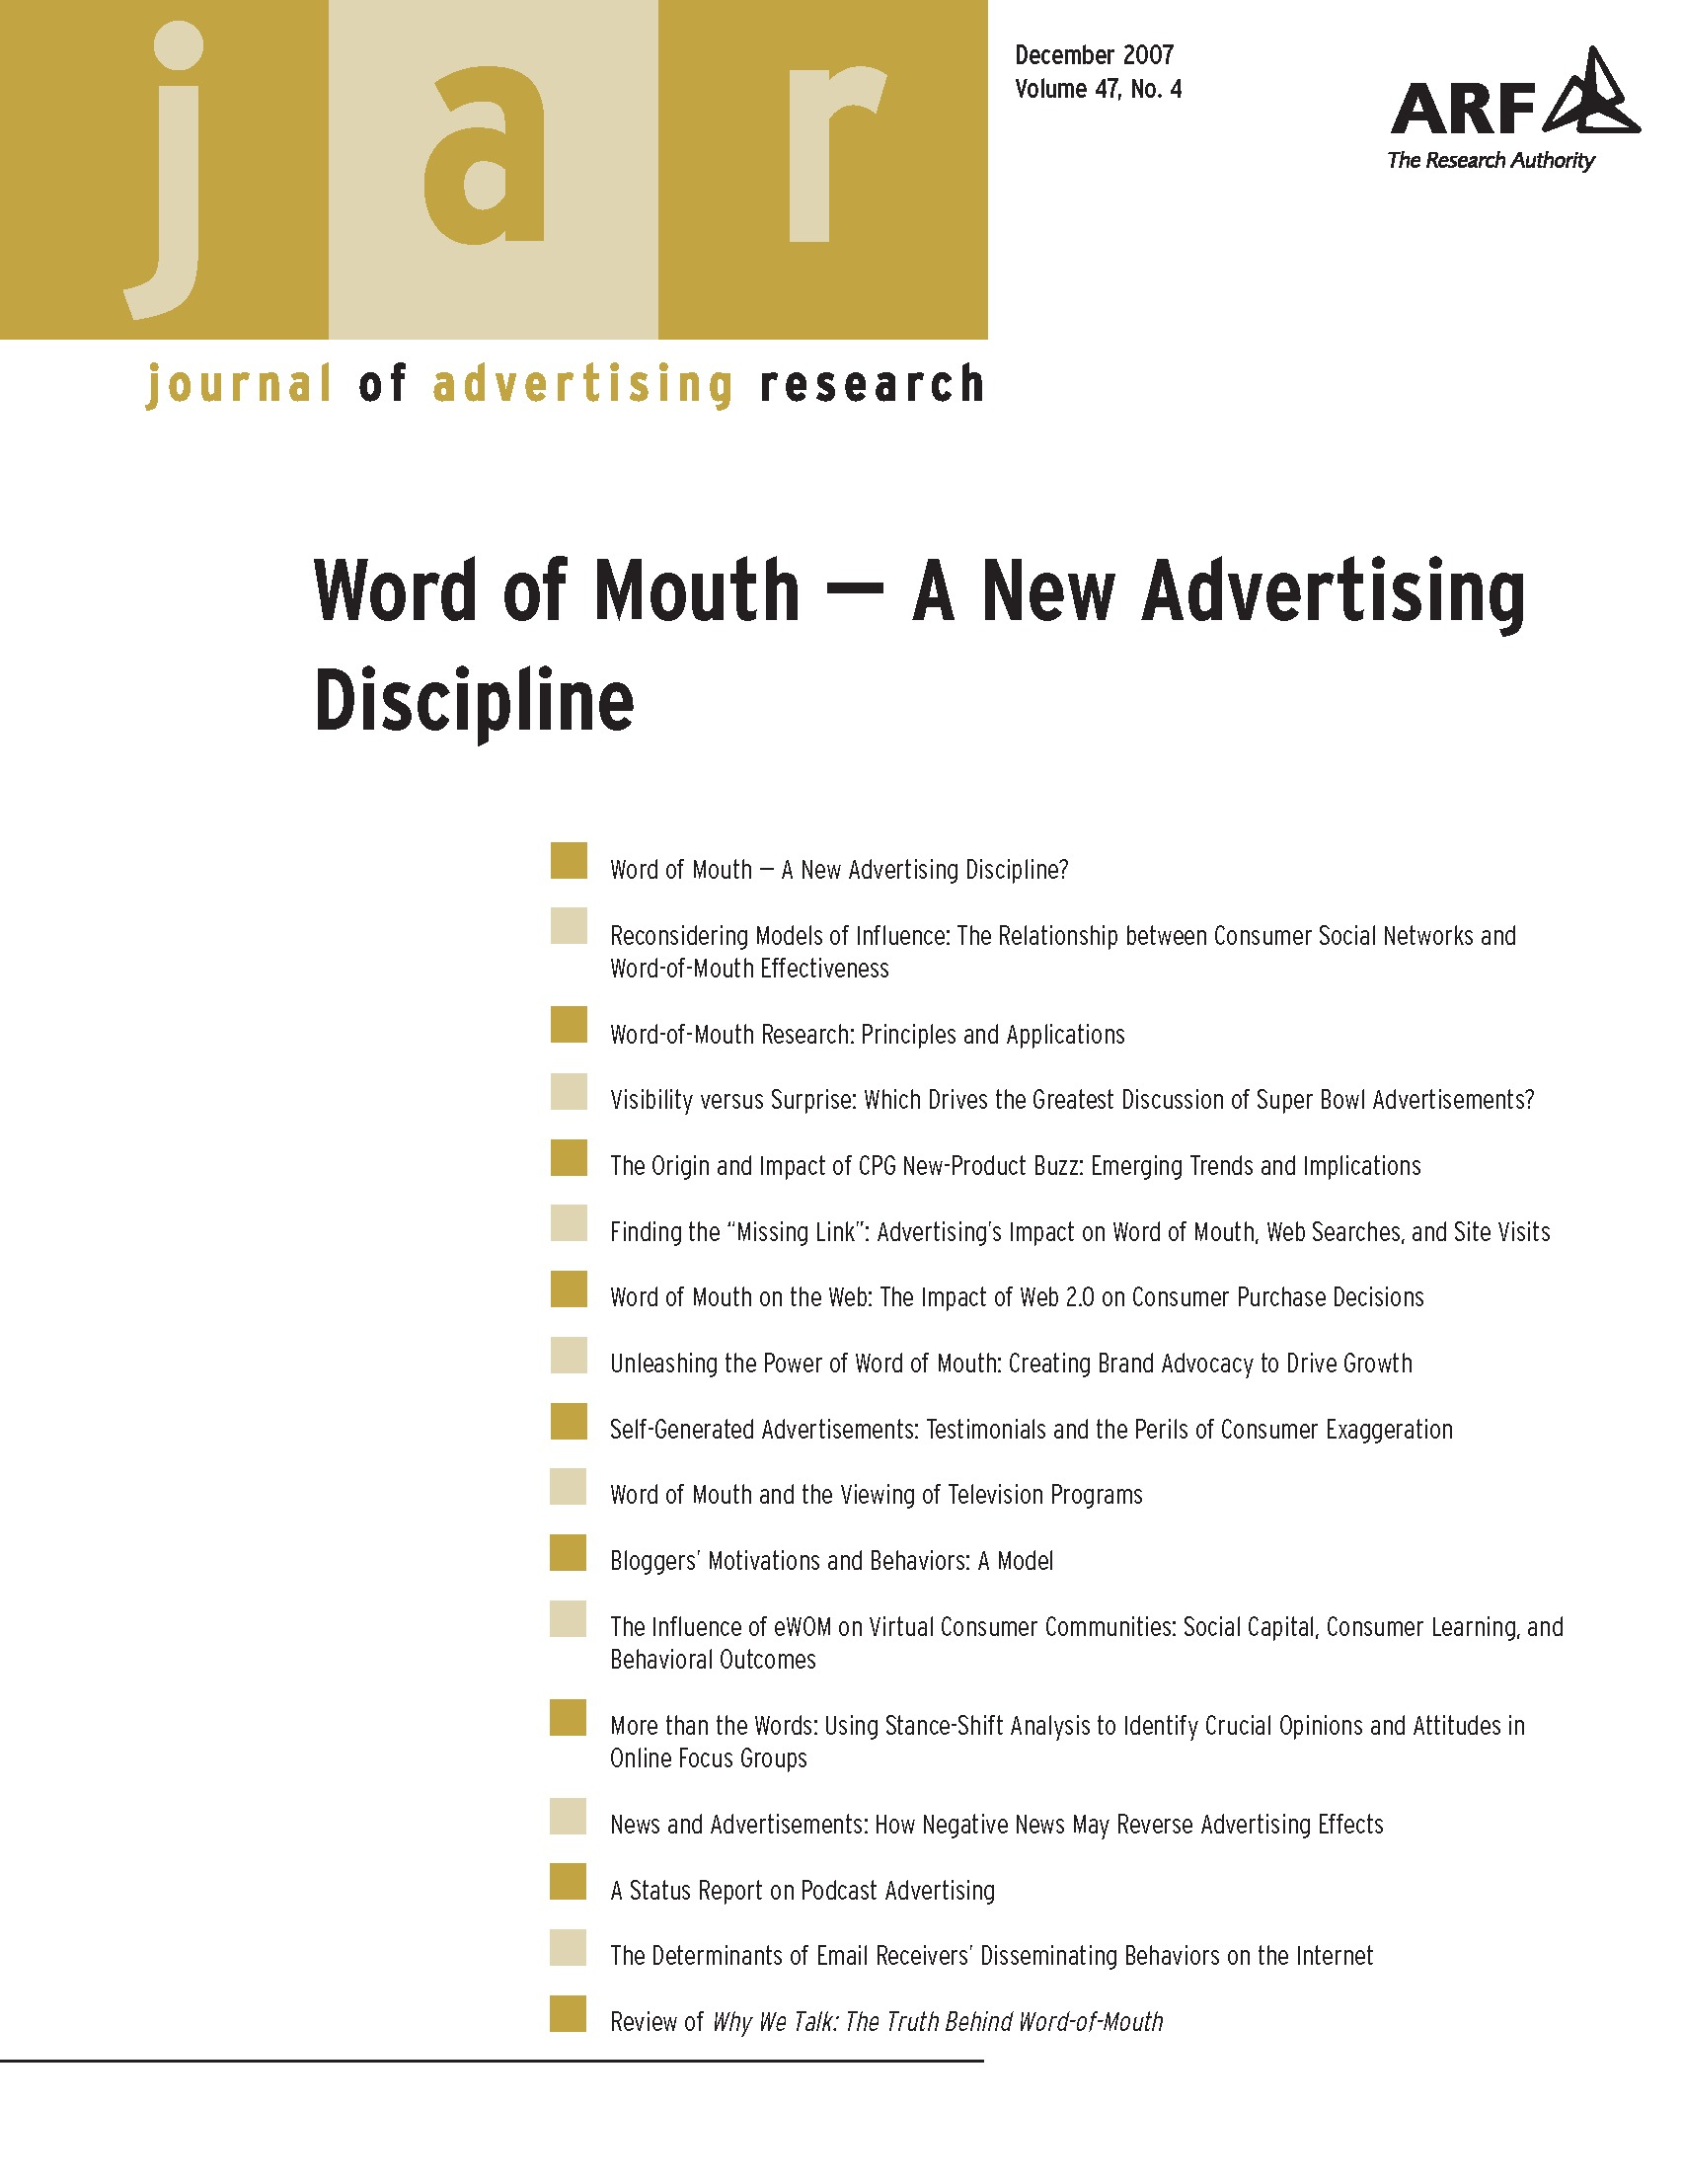 self generated advertisements testimonials and the perils of self generated advertisements testimonials and the perils of consumer exaggeration the journal of advertising research